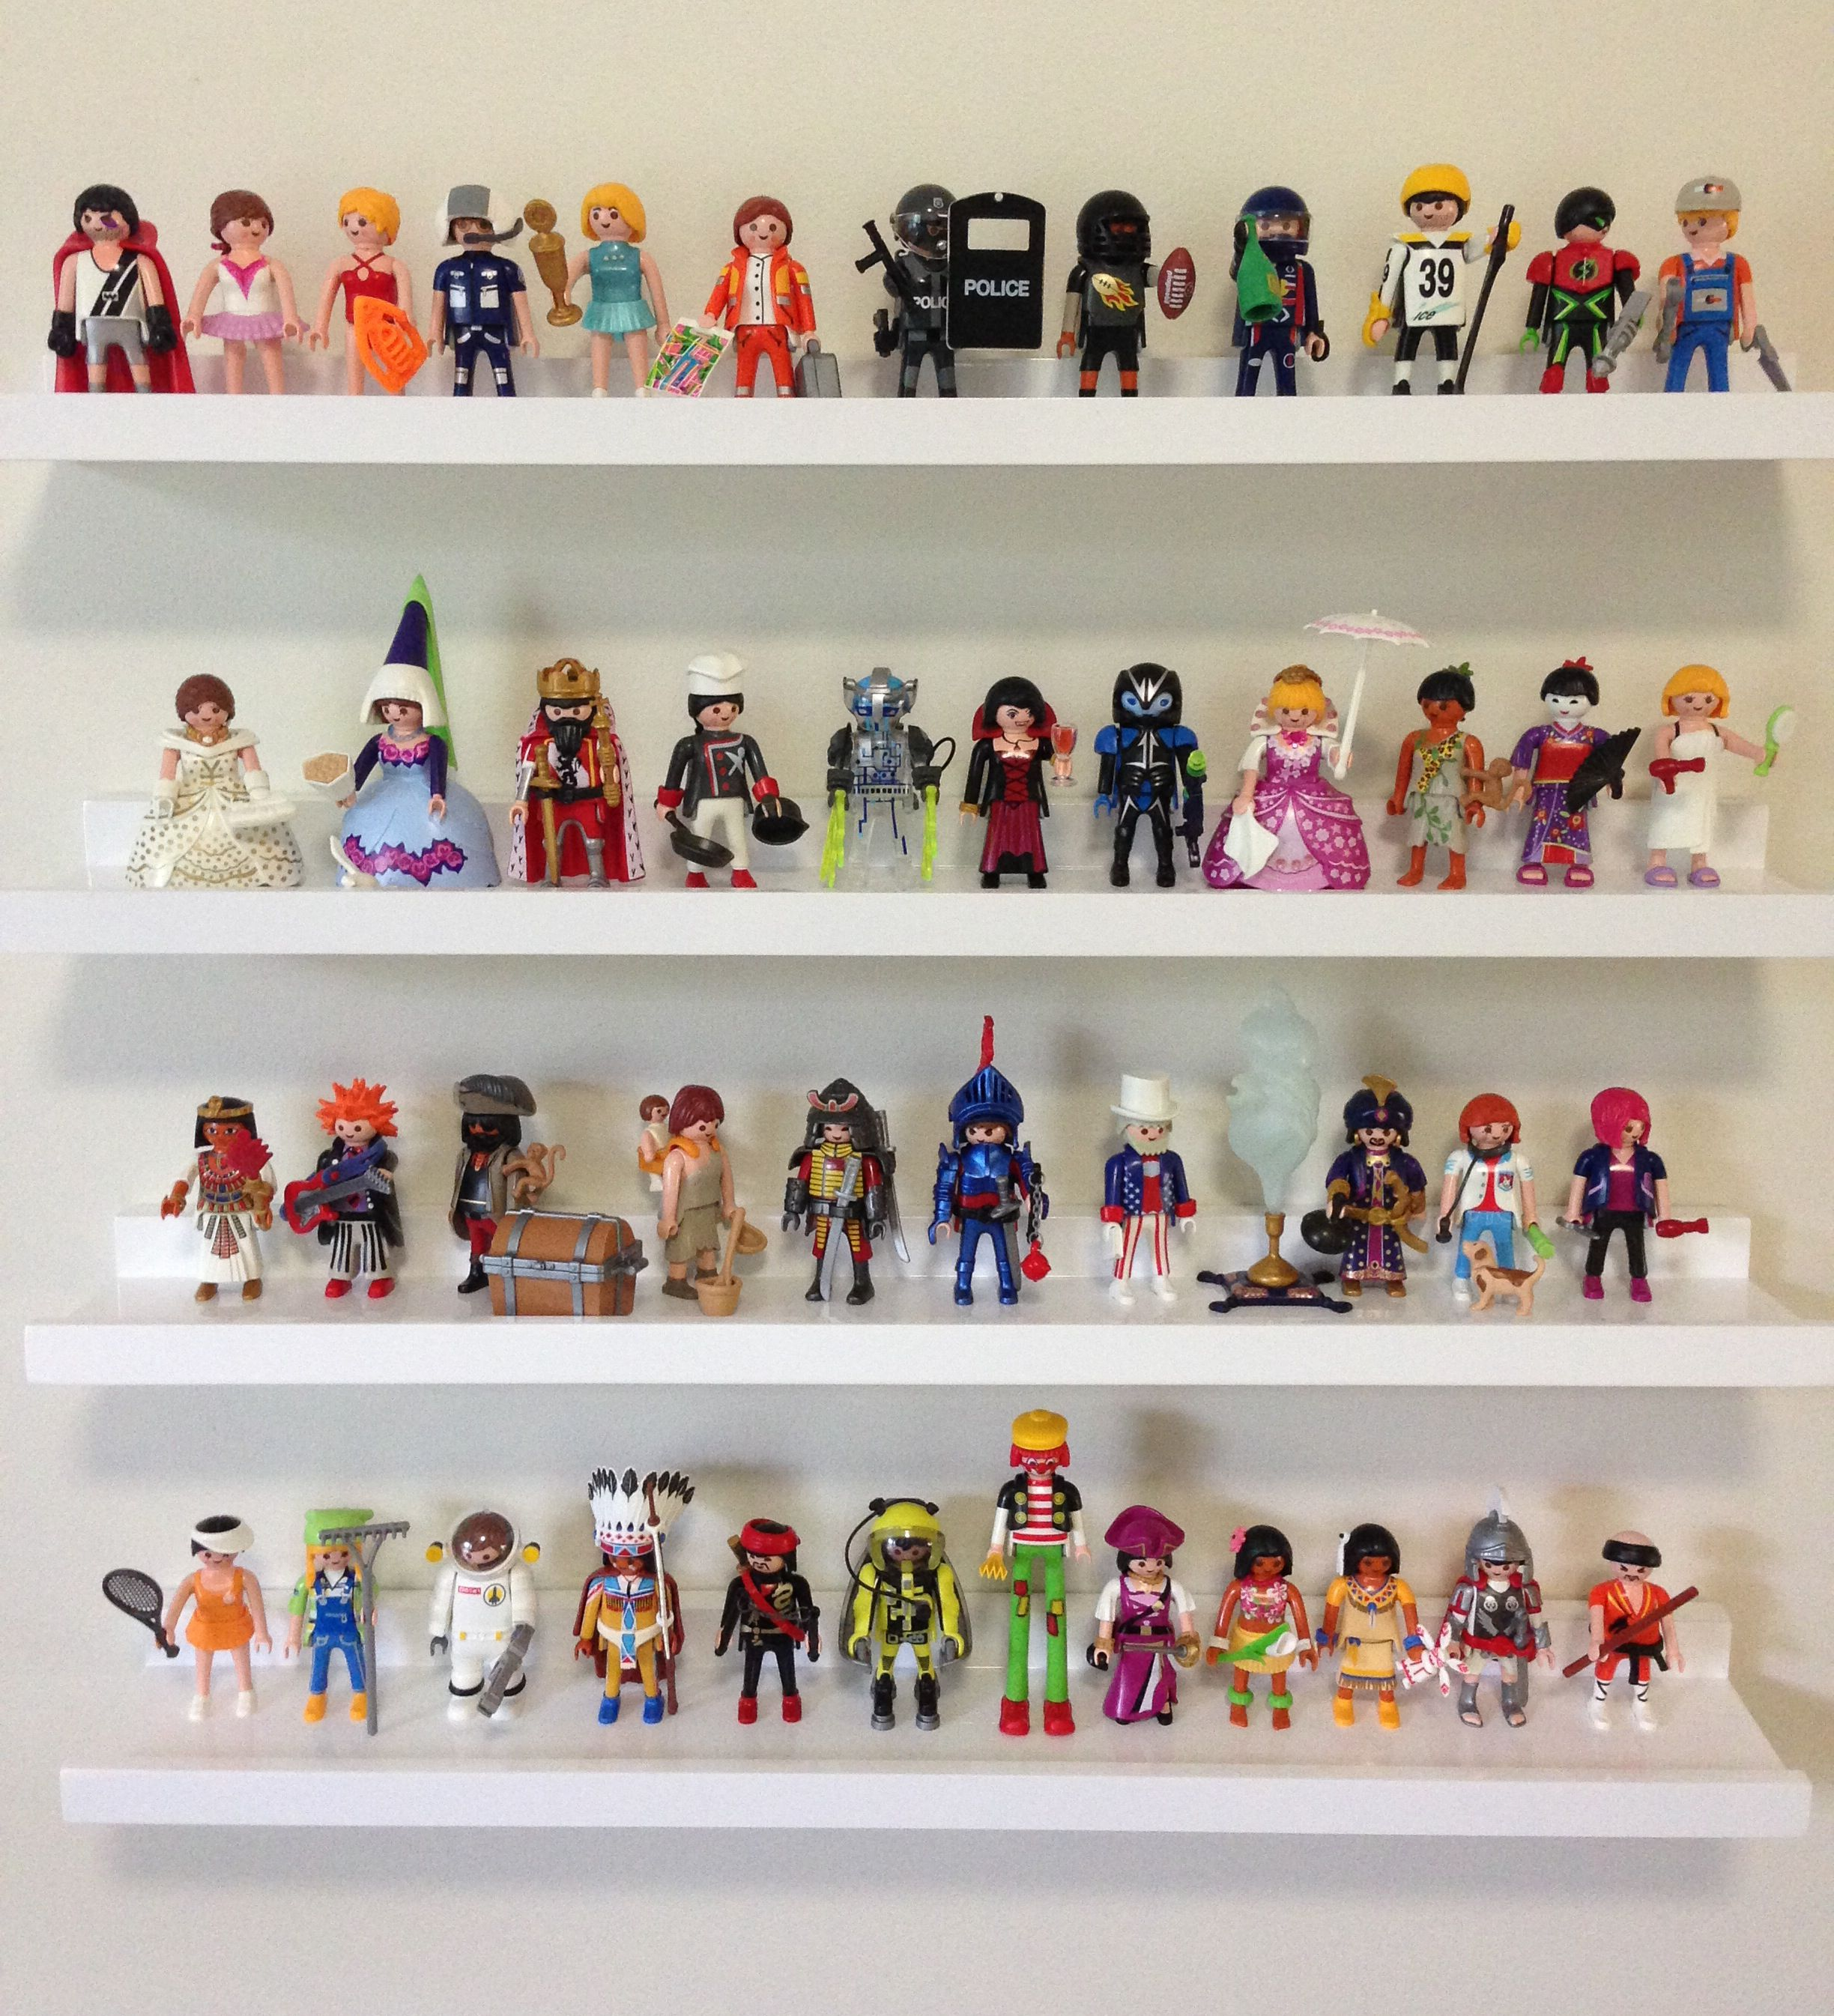 Shelves to display Playmobil figures. Playmobil